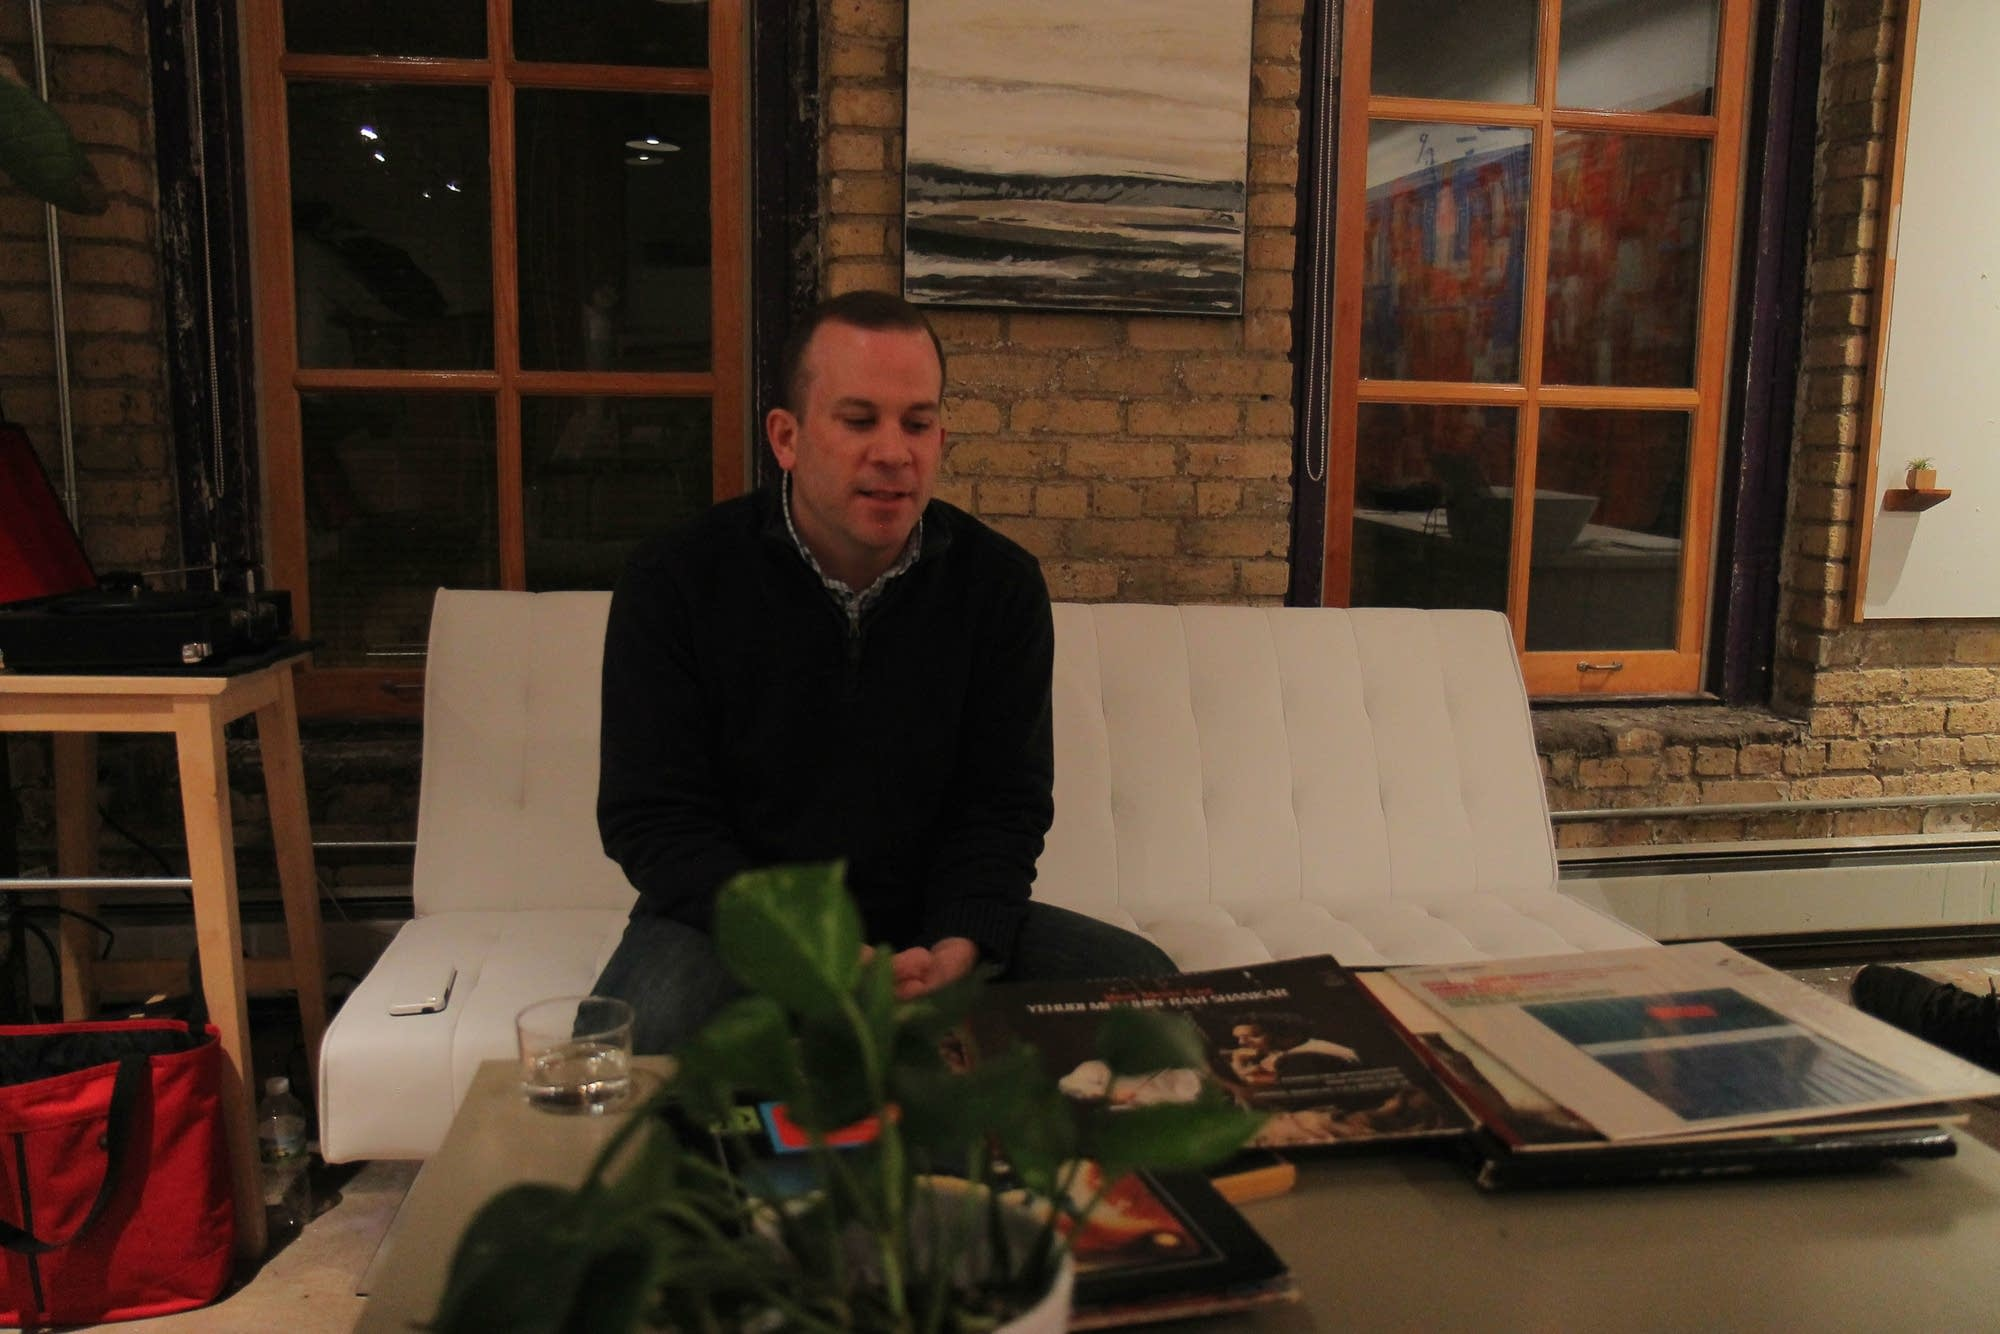 Jim O'Neill talks about a vinyl collection he inherited.